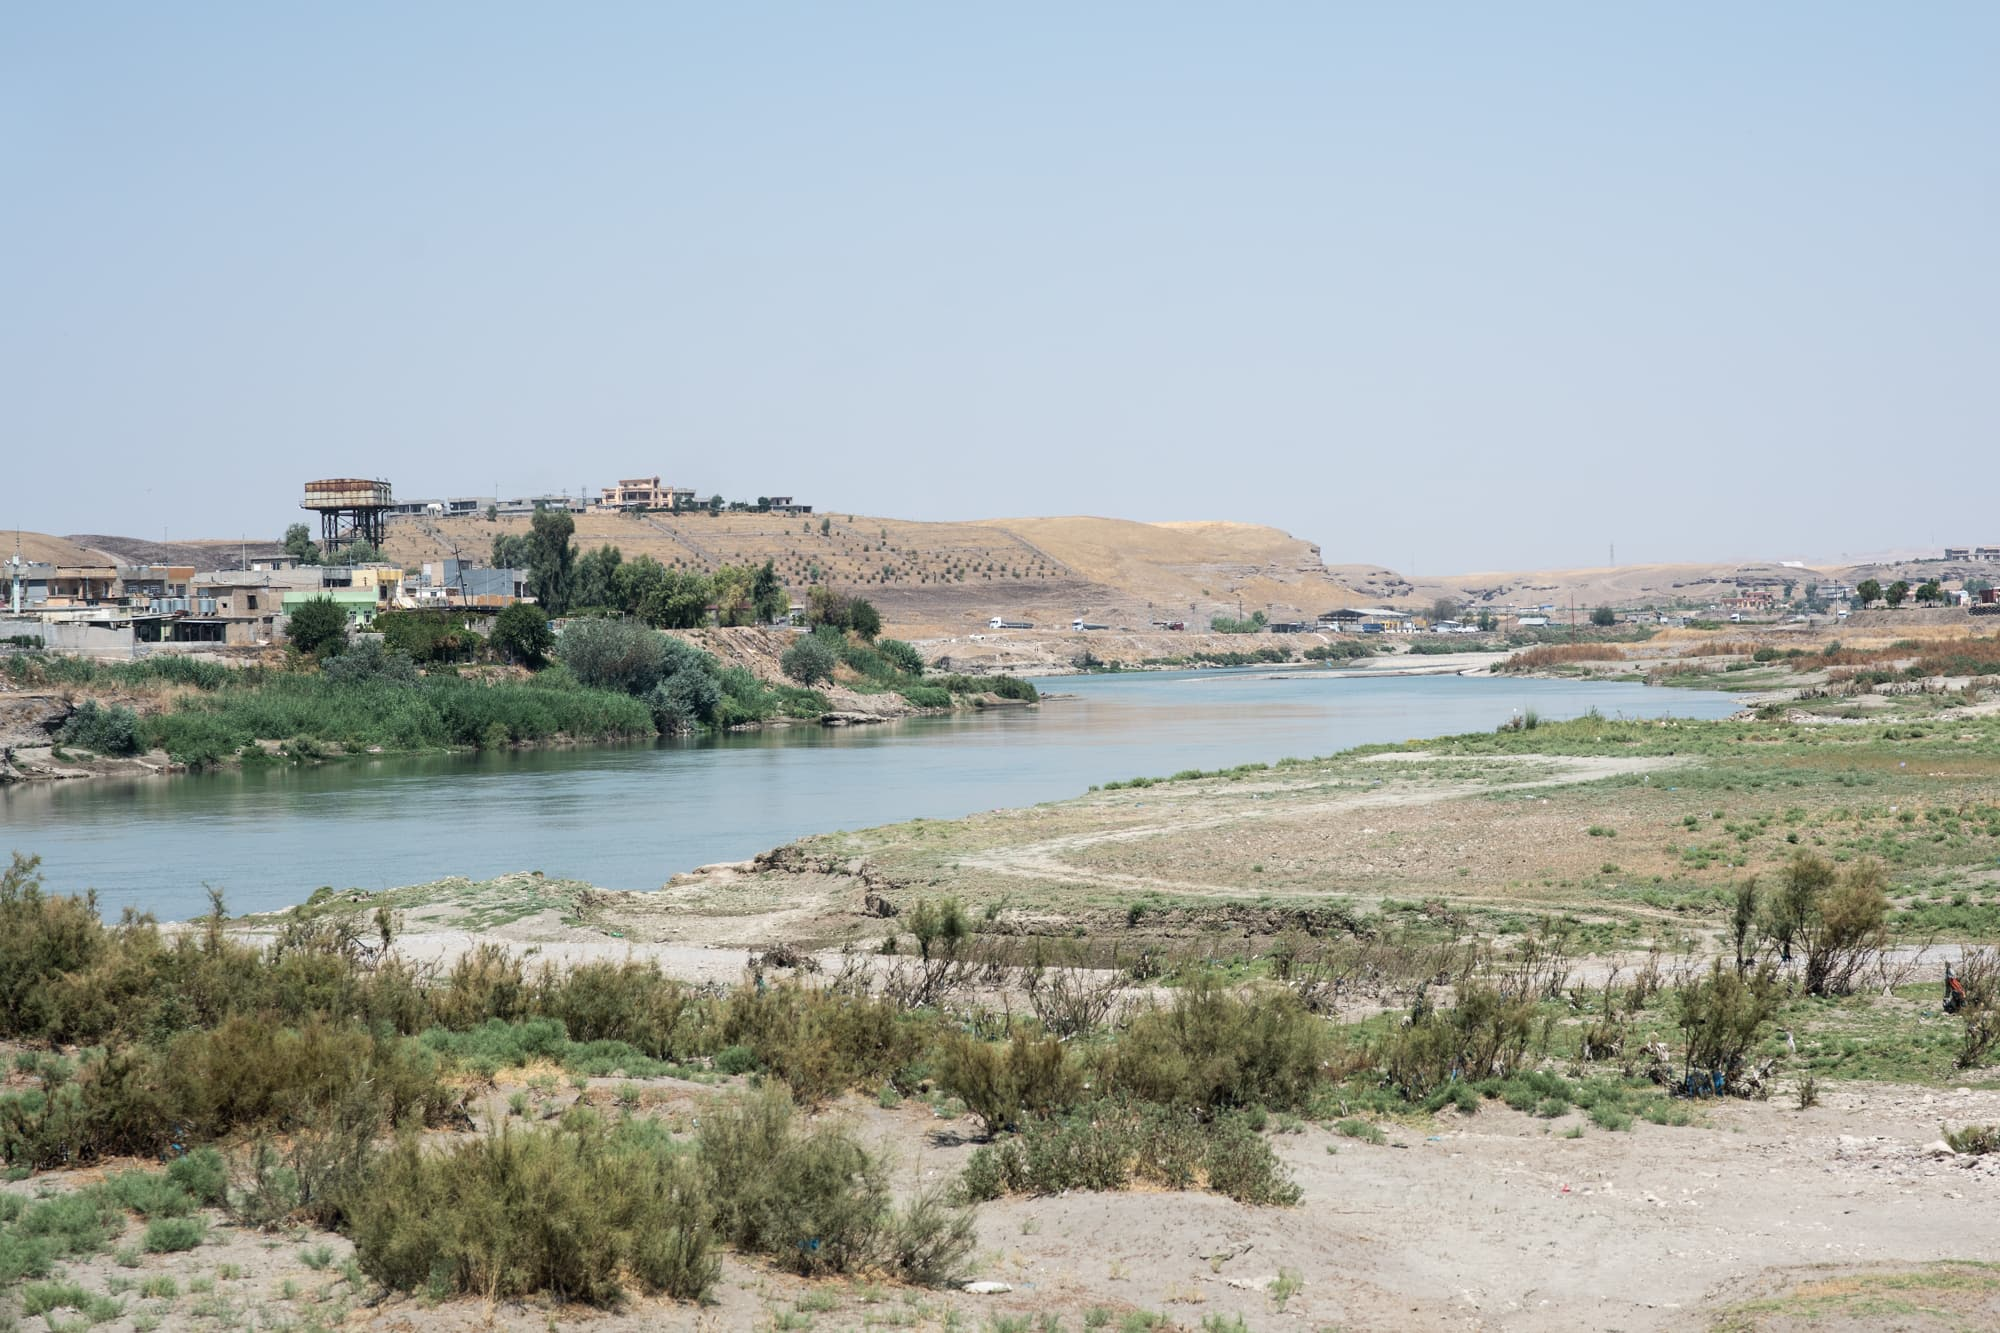 The Great Zab, a river west of Erbil, Iraq, on Sept 2nd, 2019.